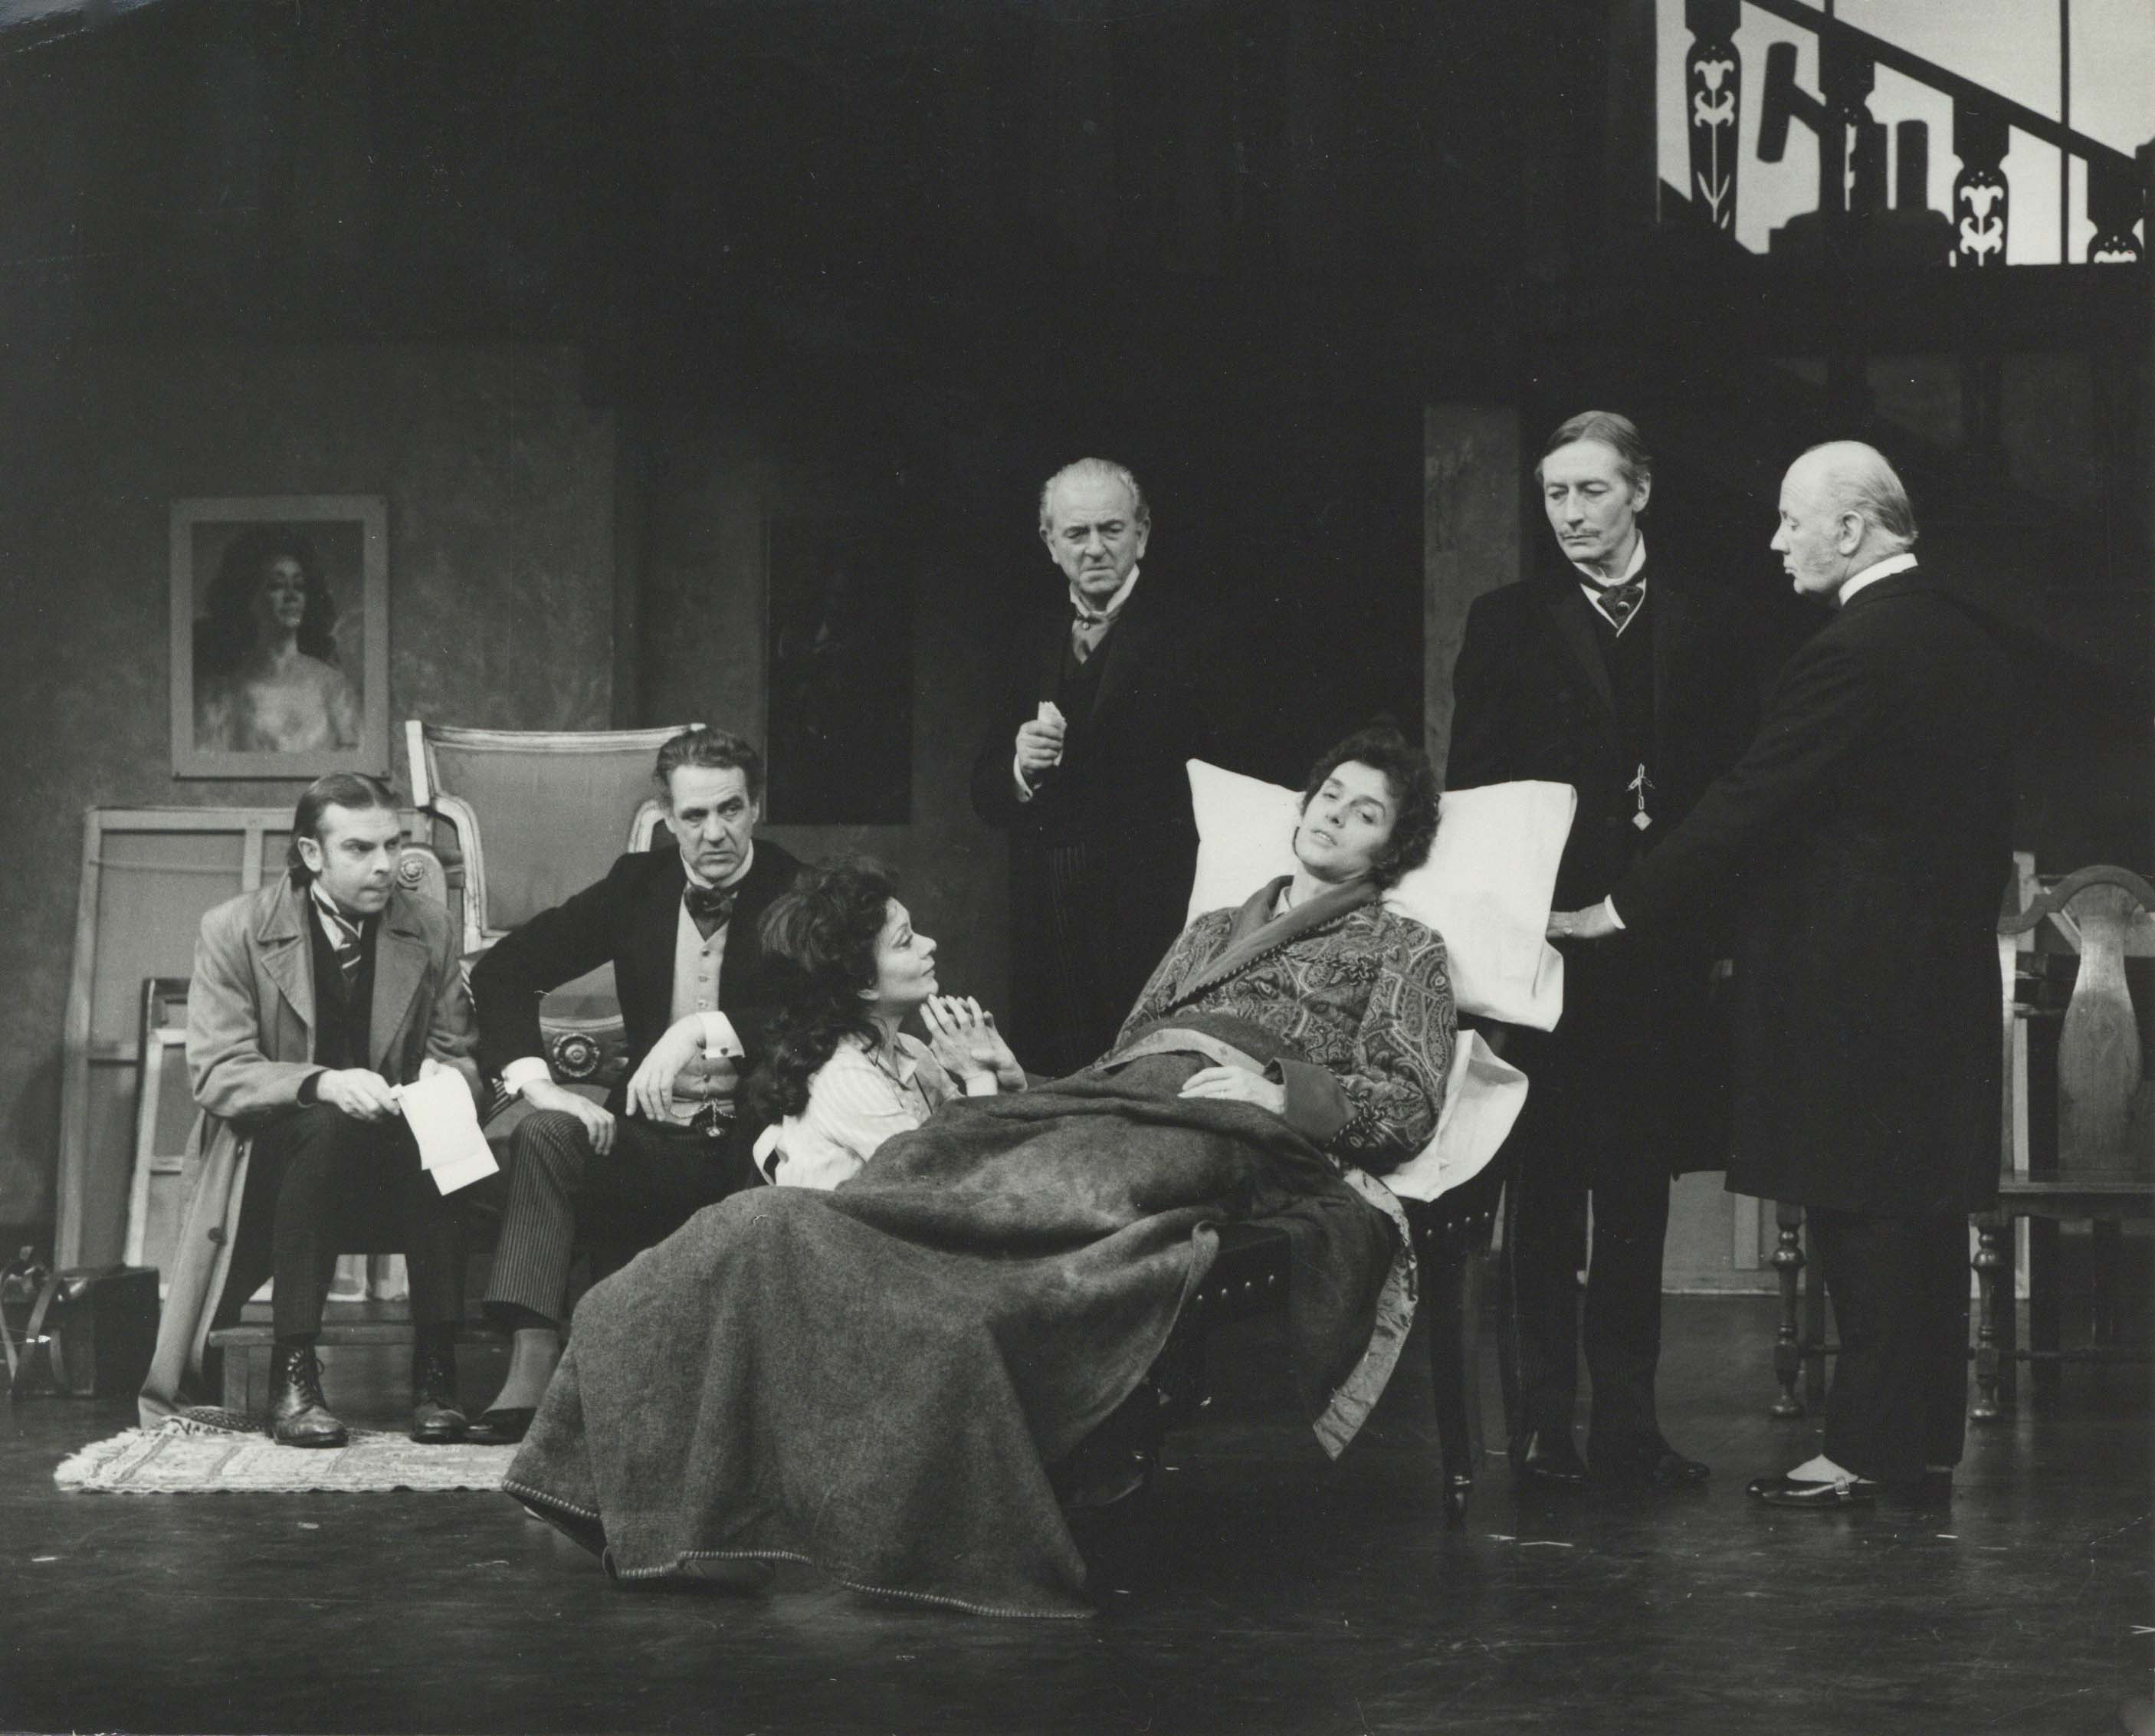 Production photograph - The Doctor's Dilemma - B Poyser, M Aldridge, J Plowright, J Clements, R Phillips, J Neville, W Mervyn - photographer John Timbers - 1972